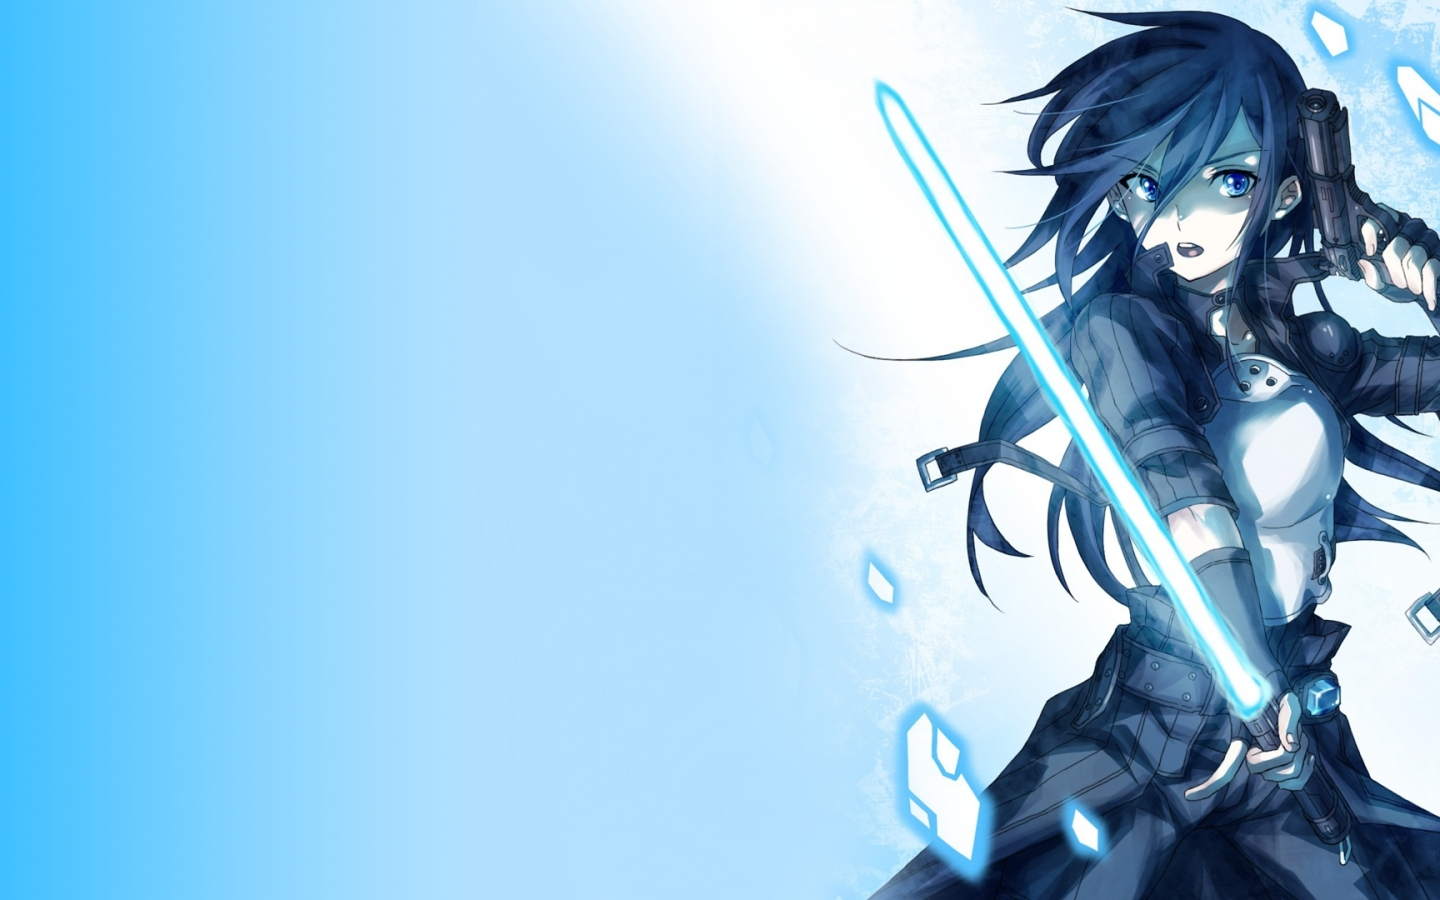 Abstract Desktop Sword Art Online Wallpaper 2560×1440 Wallpaper